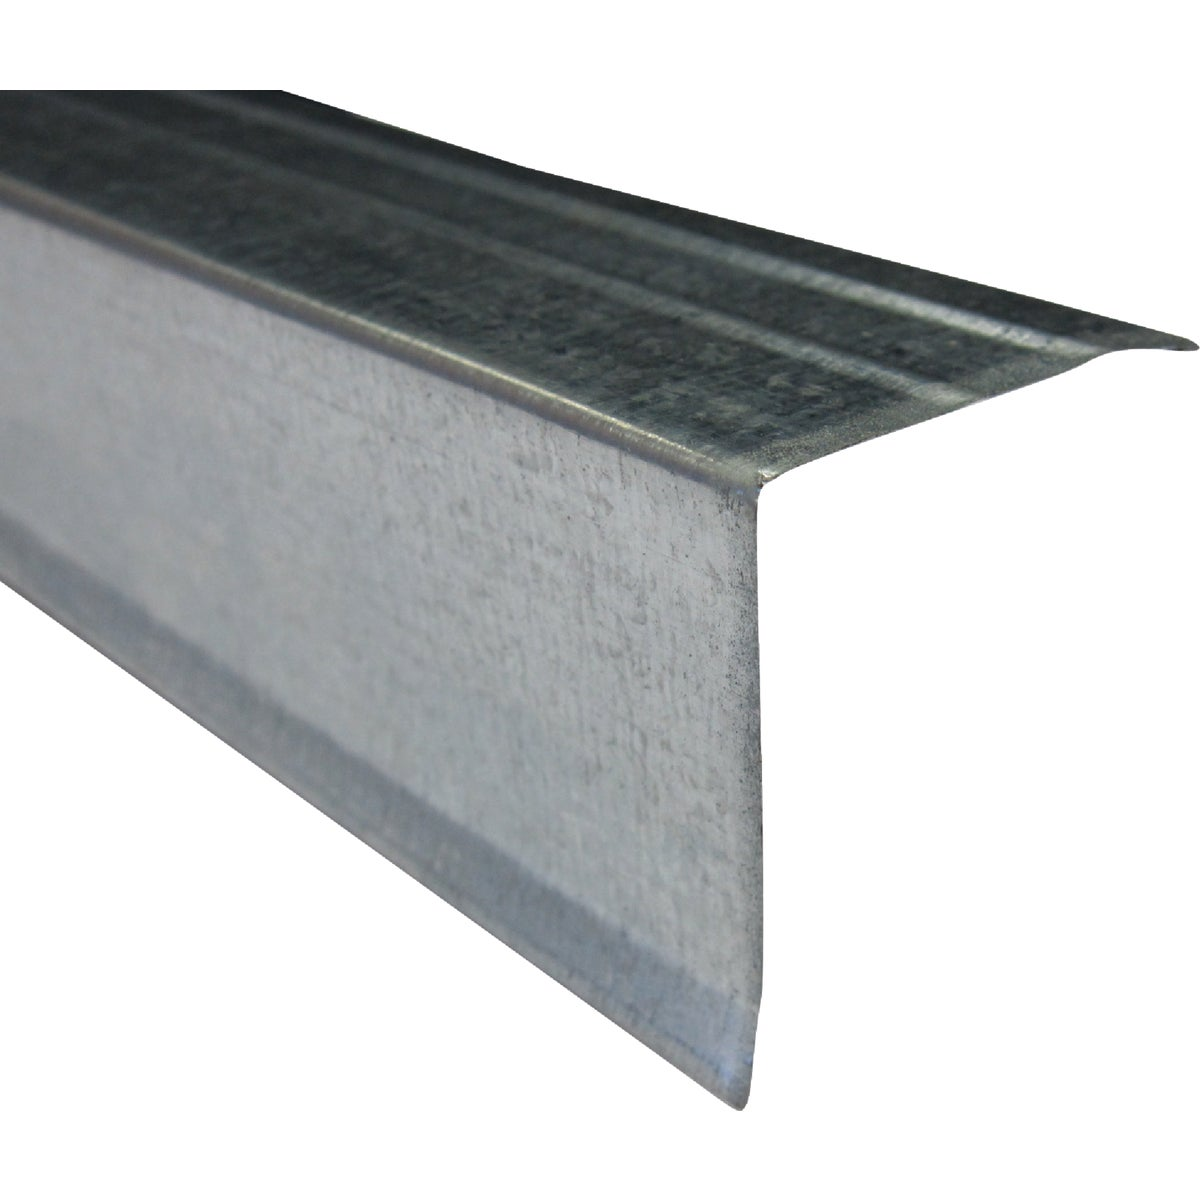 "2""X10' STYLE A ROOF EDGE - 32026-GV10 by Klauer Mfg Co"